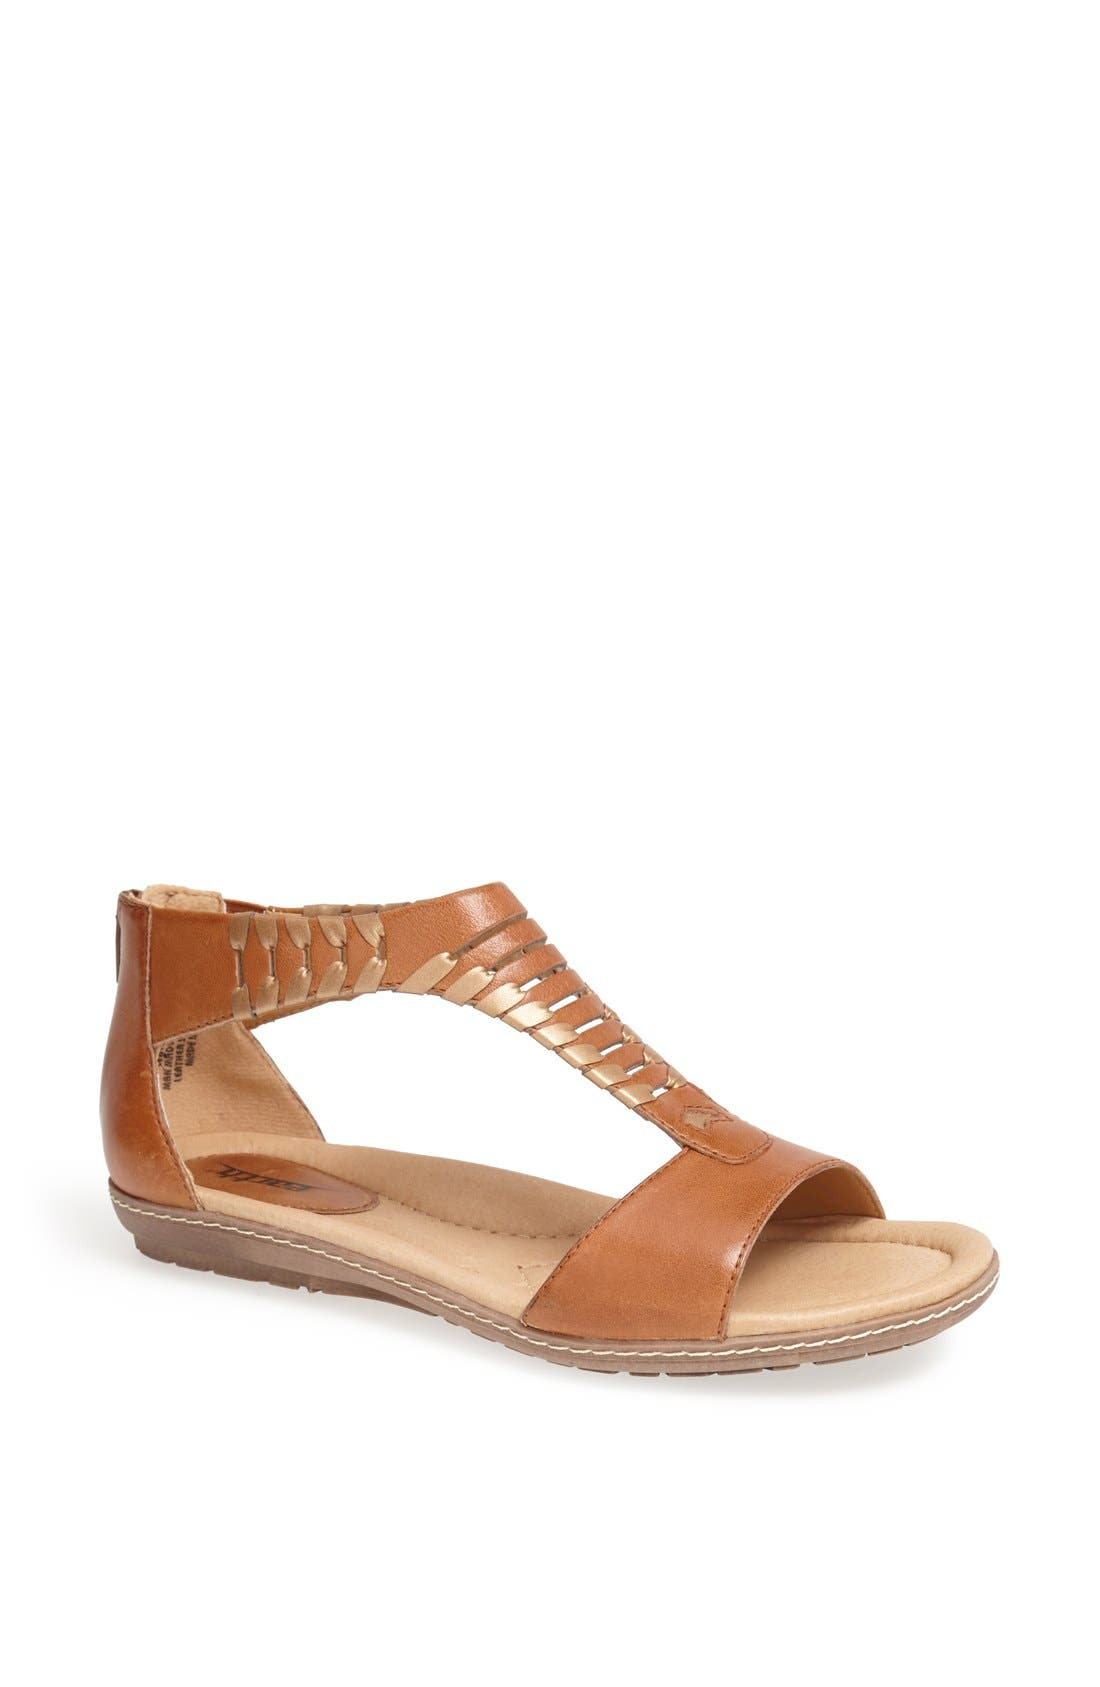 Alternate Image 1 Selected - Earth® 'Shell' Cutout Leather Sandal